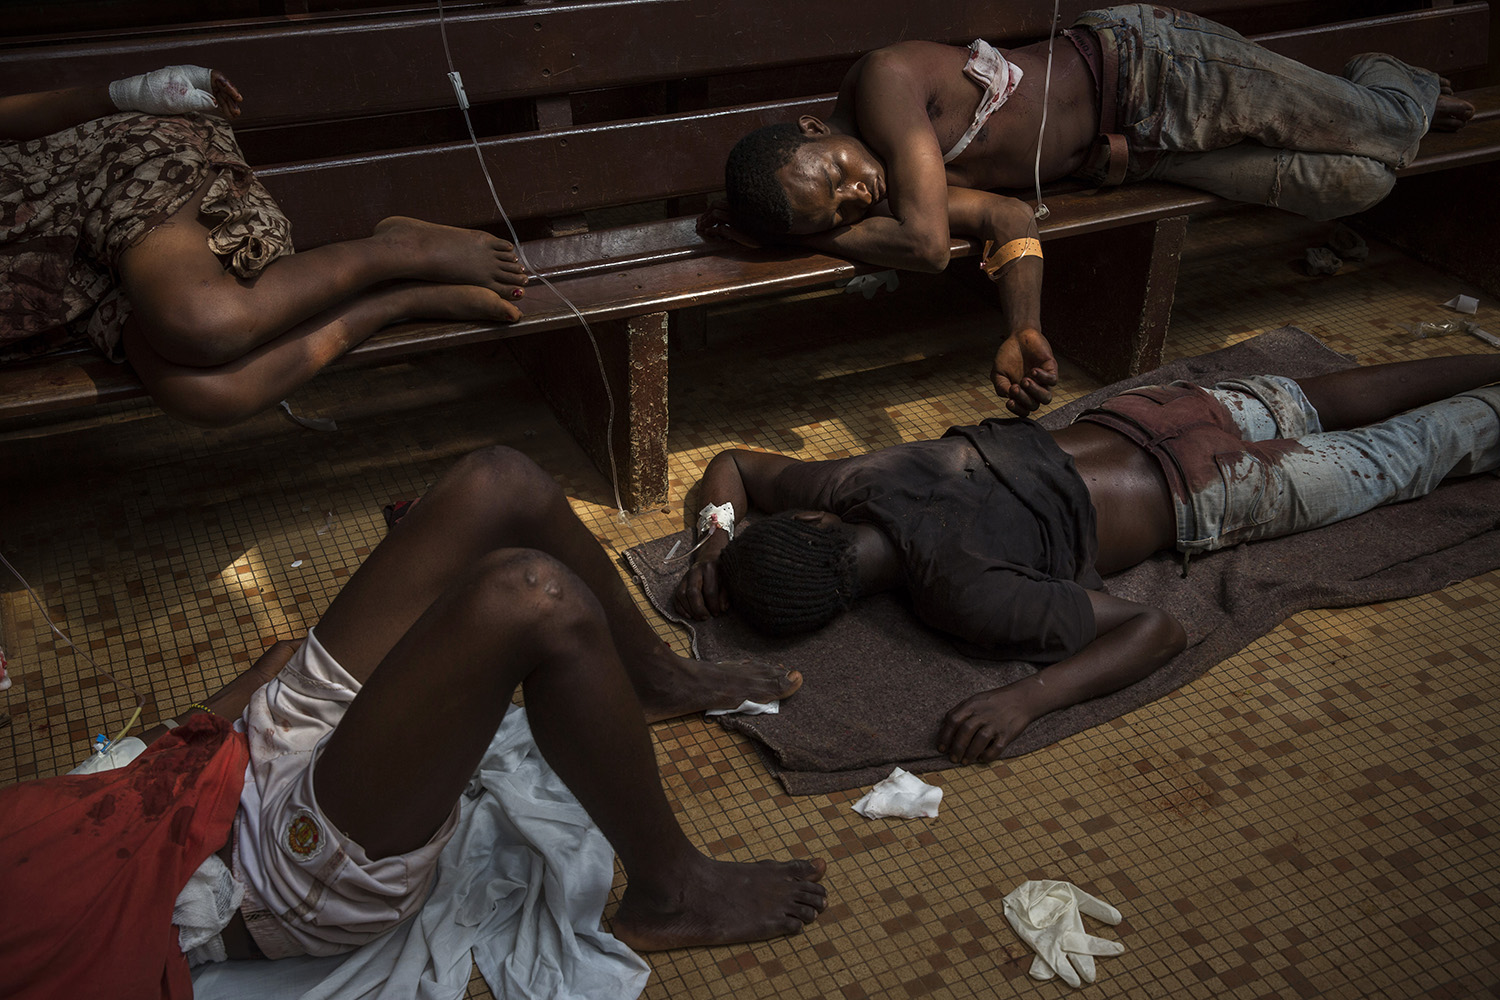 Dec. 5, 2013. Wounded Christians and Muslims at the community hospital in Bangui. Aid workers and medical staff treated roughly 100 victims, and around 50 bodies were brought to the hospital on this day.